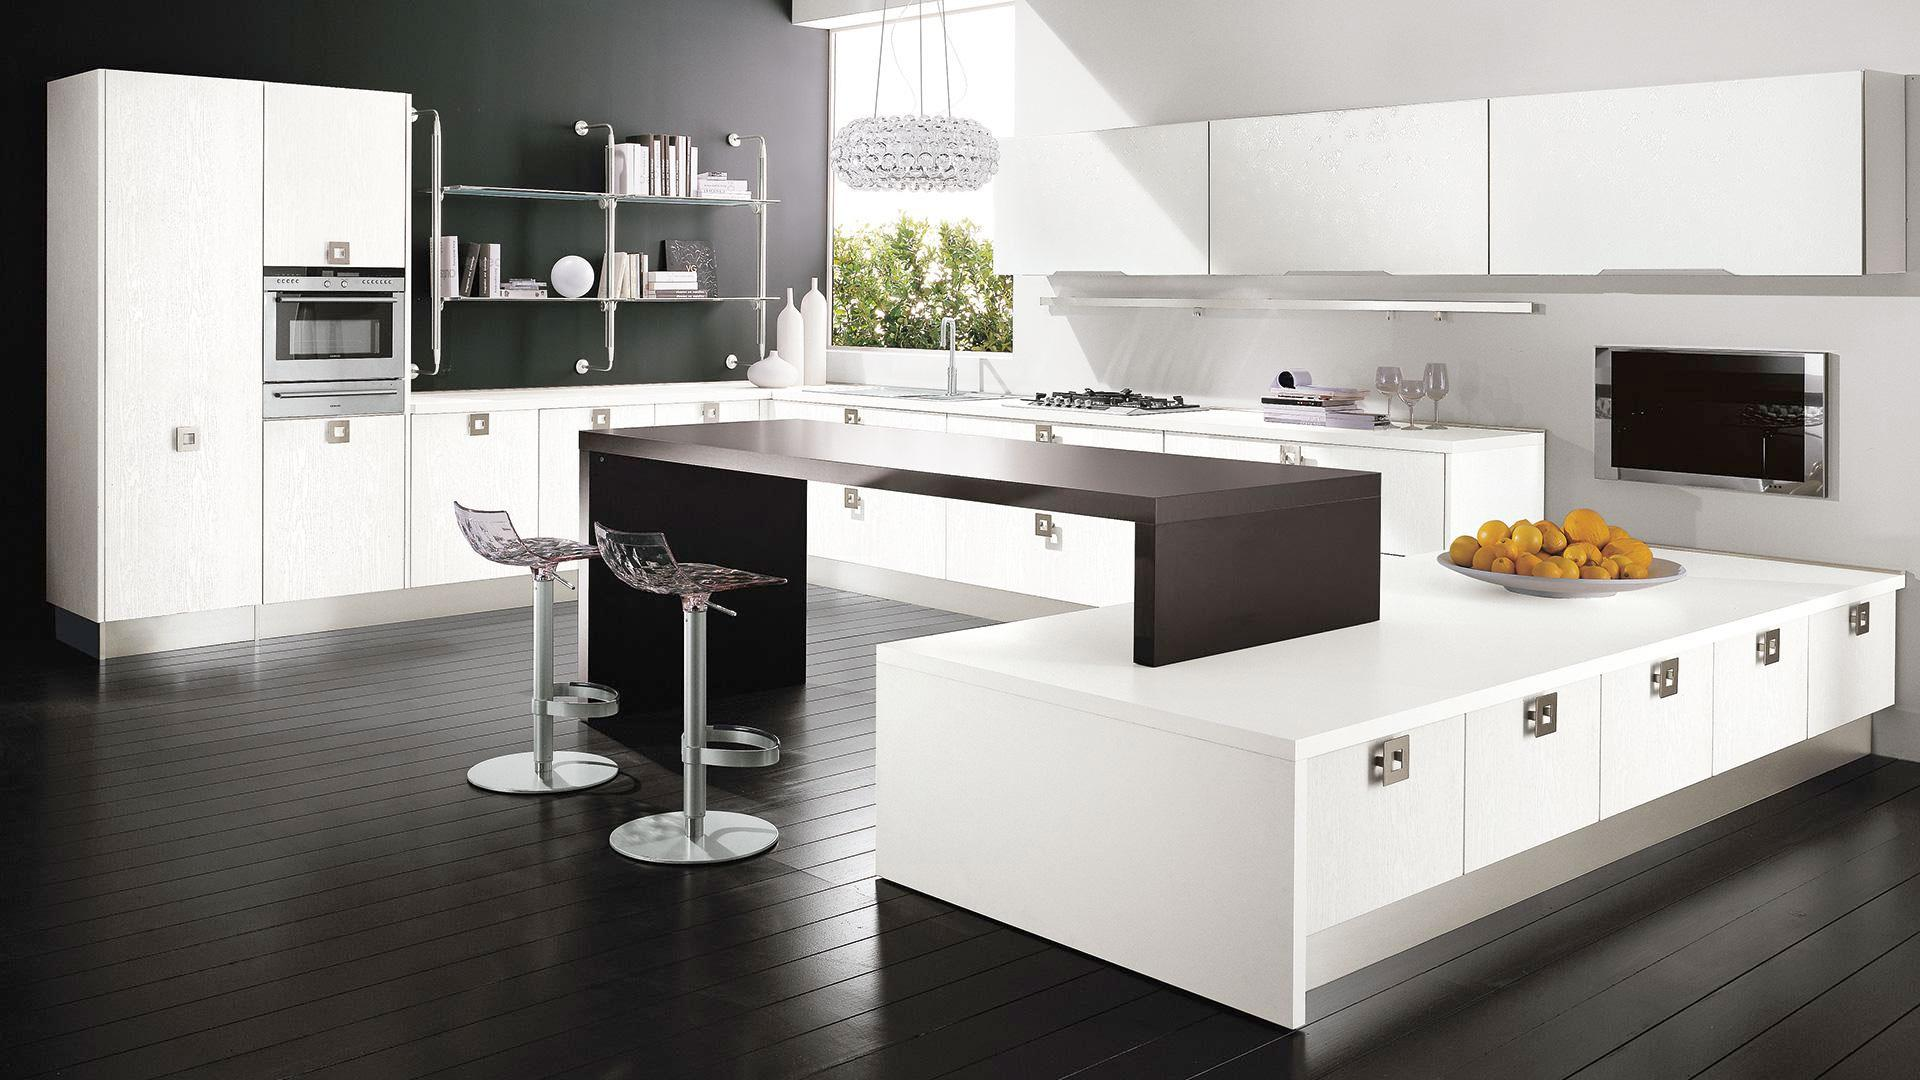 Kitchen Cabinets European Design euro interior collection – modern kitchen